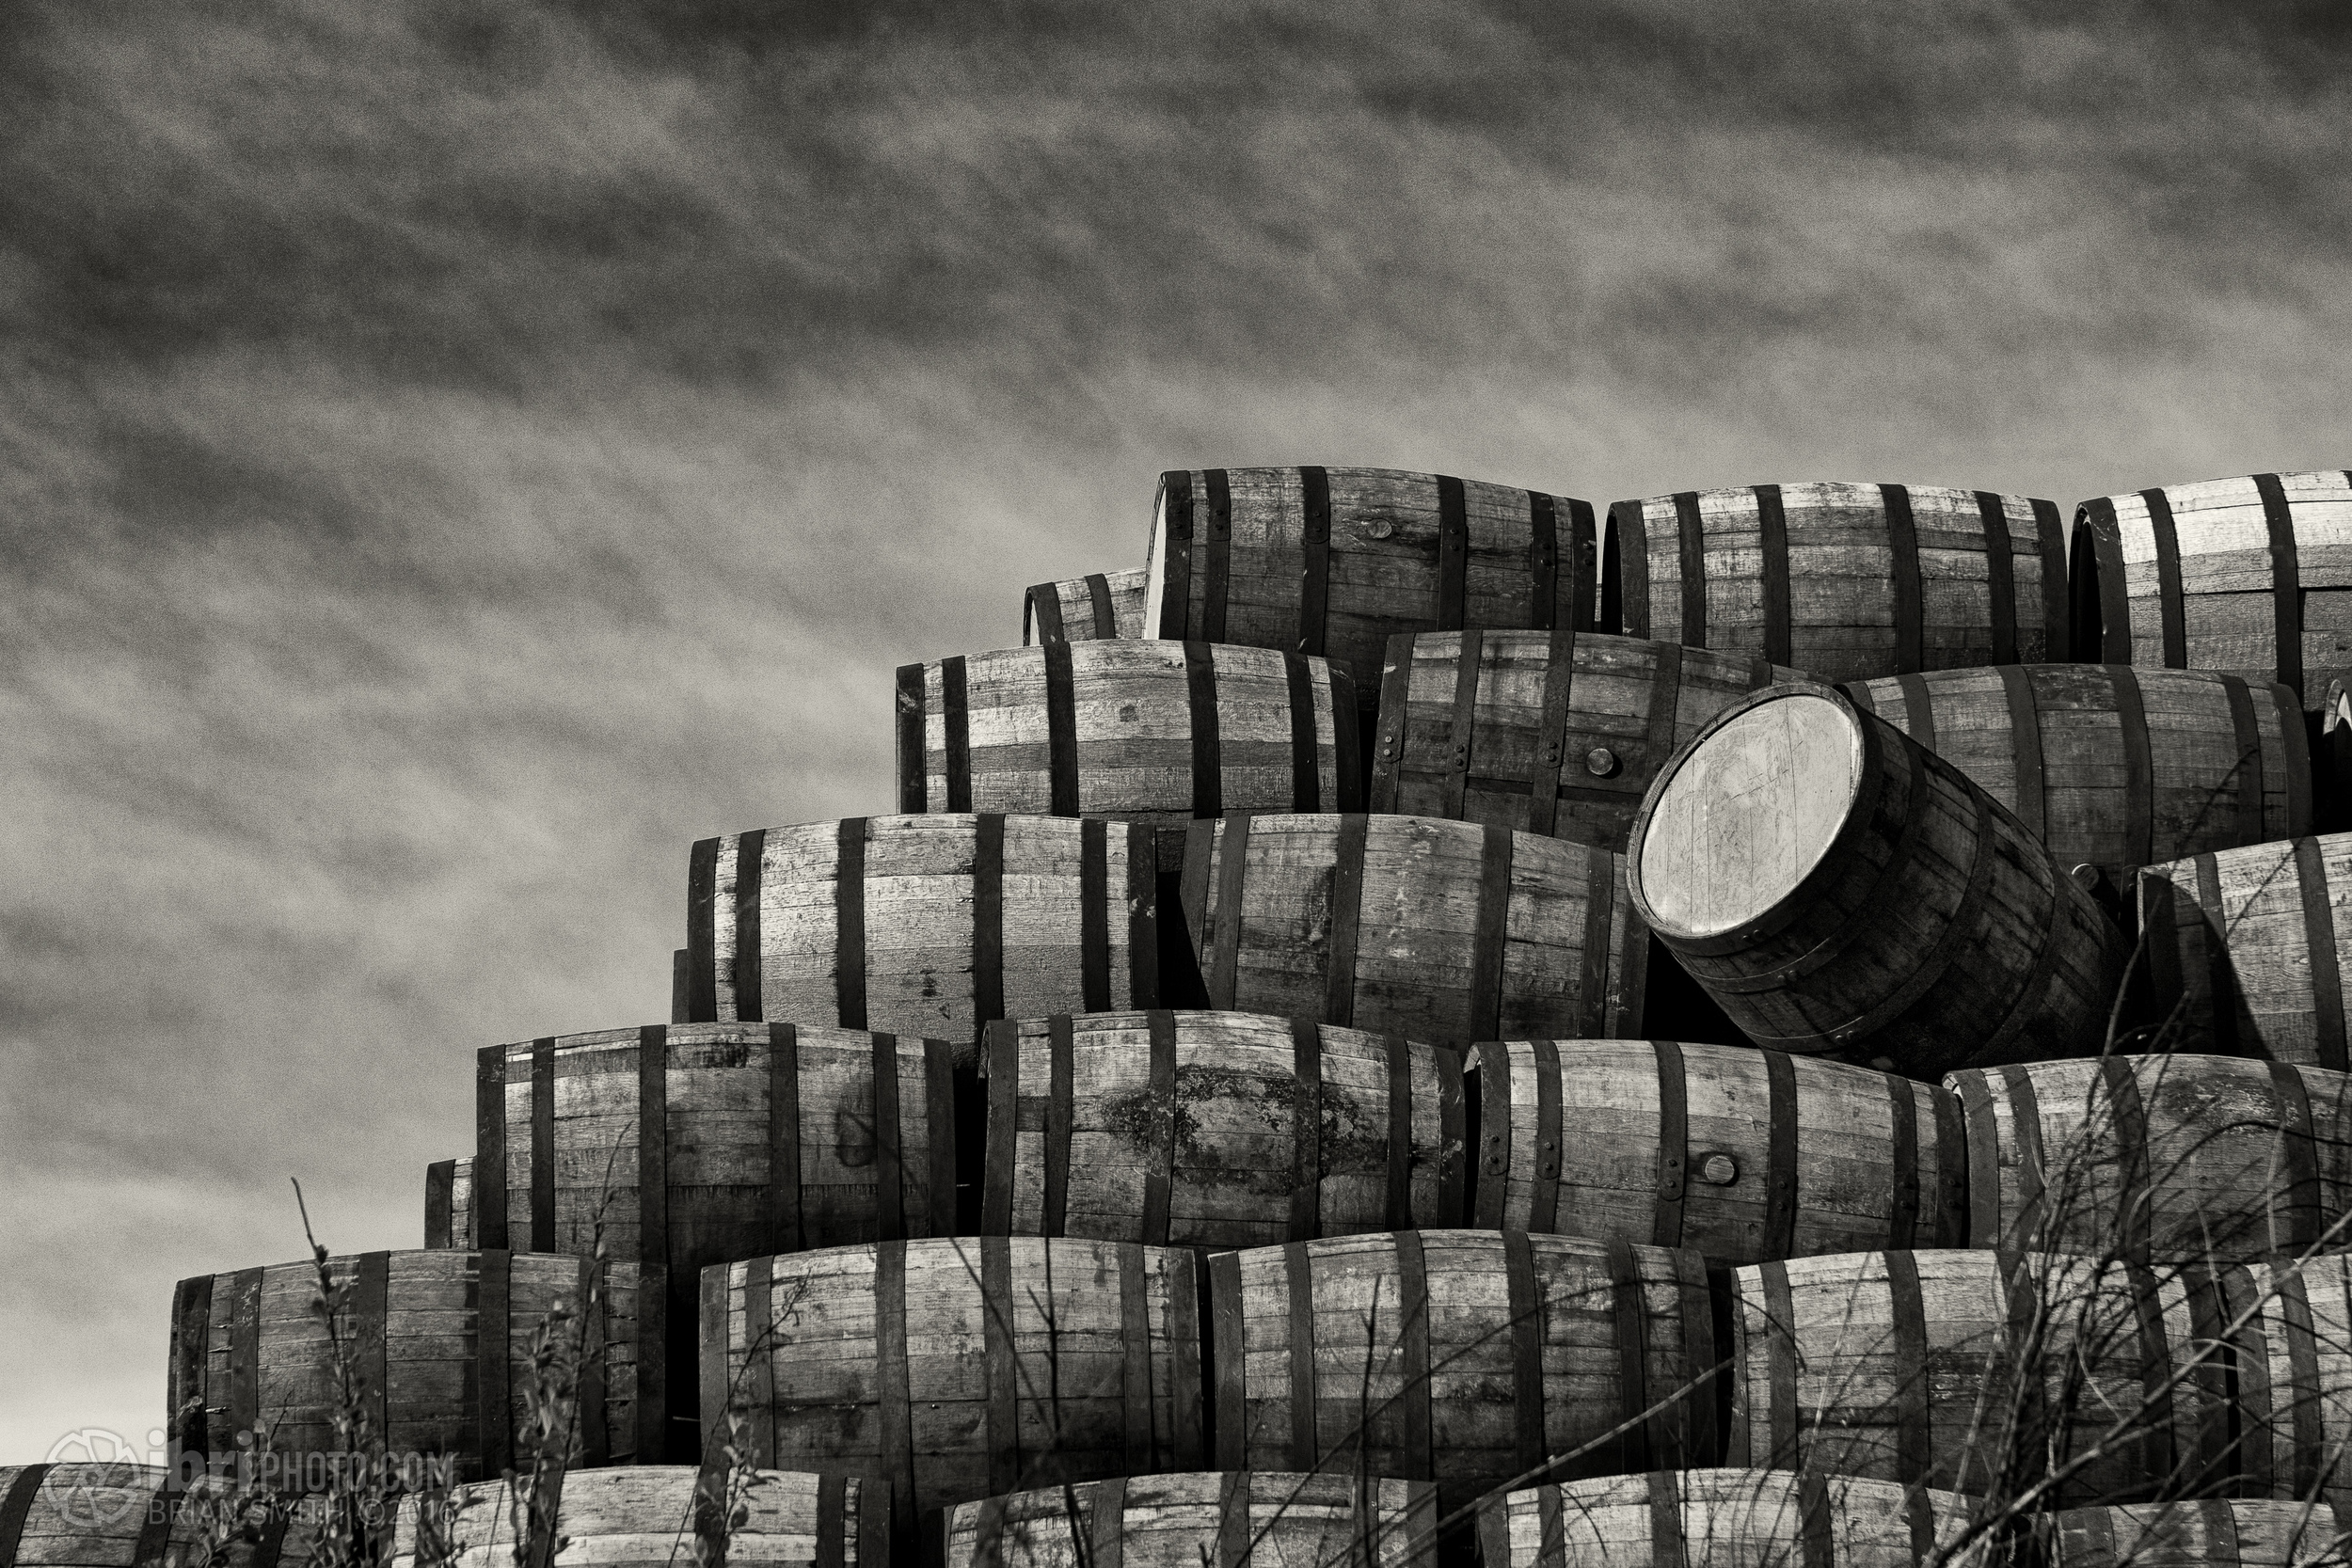 Stacks of whisky barrels, on the other side of a high fence, along the path that winds through the huge Diageo whisky bond.